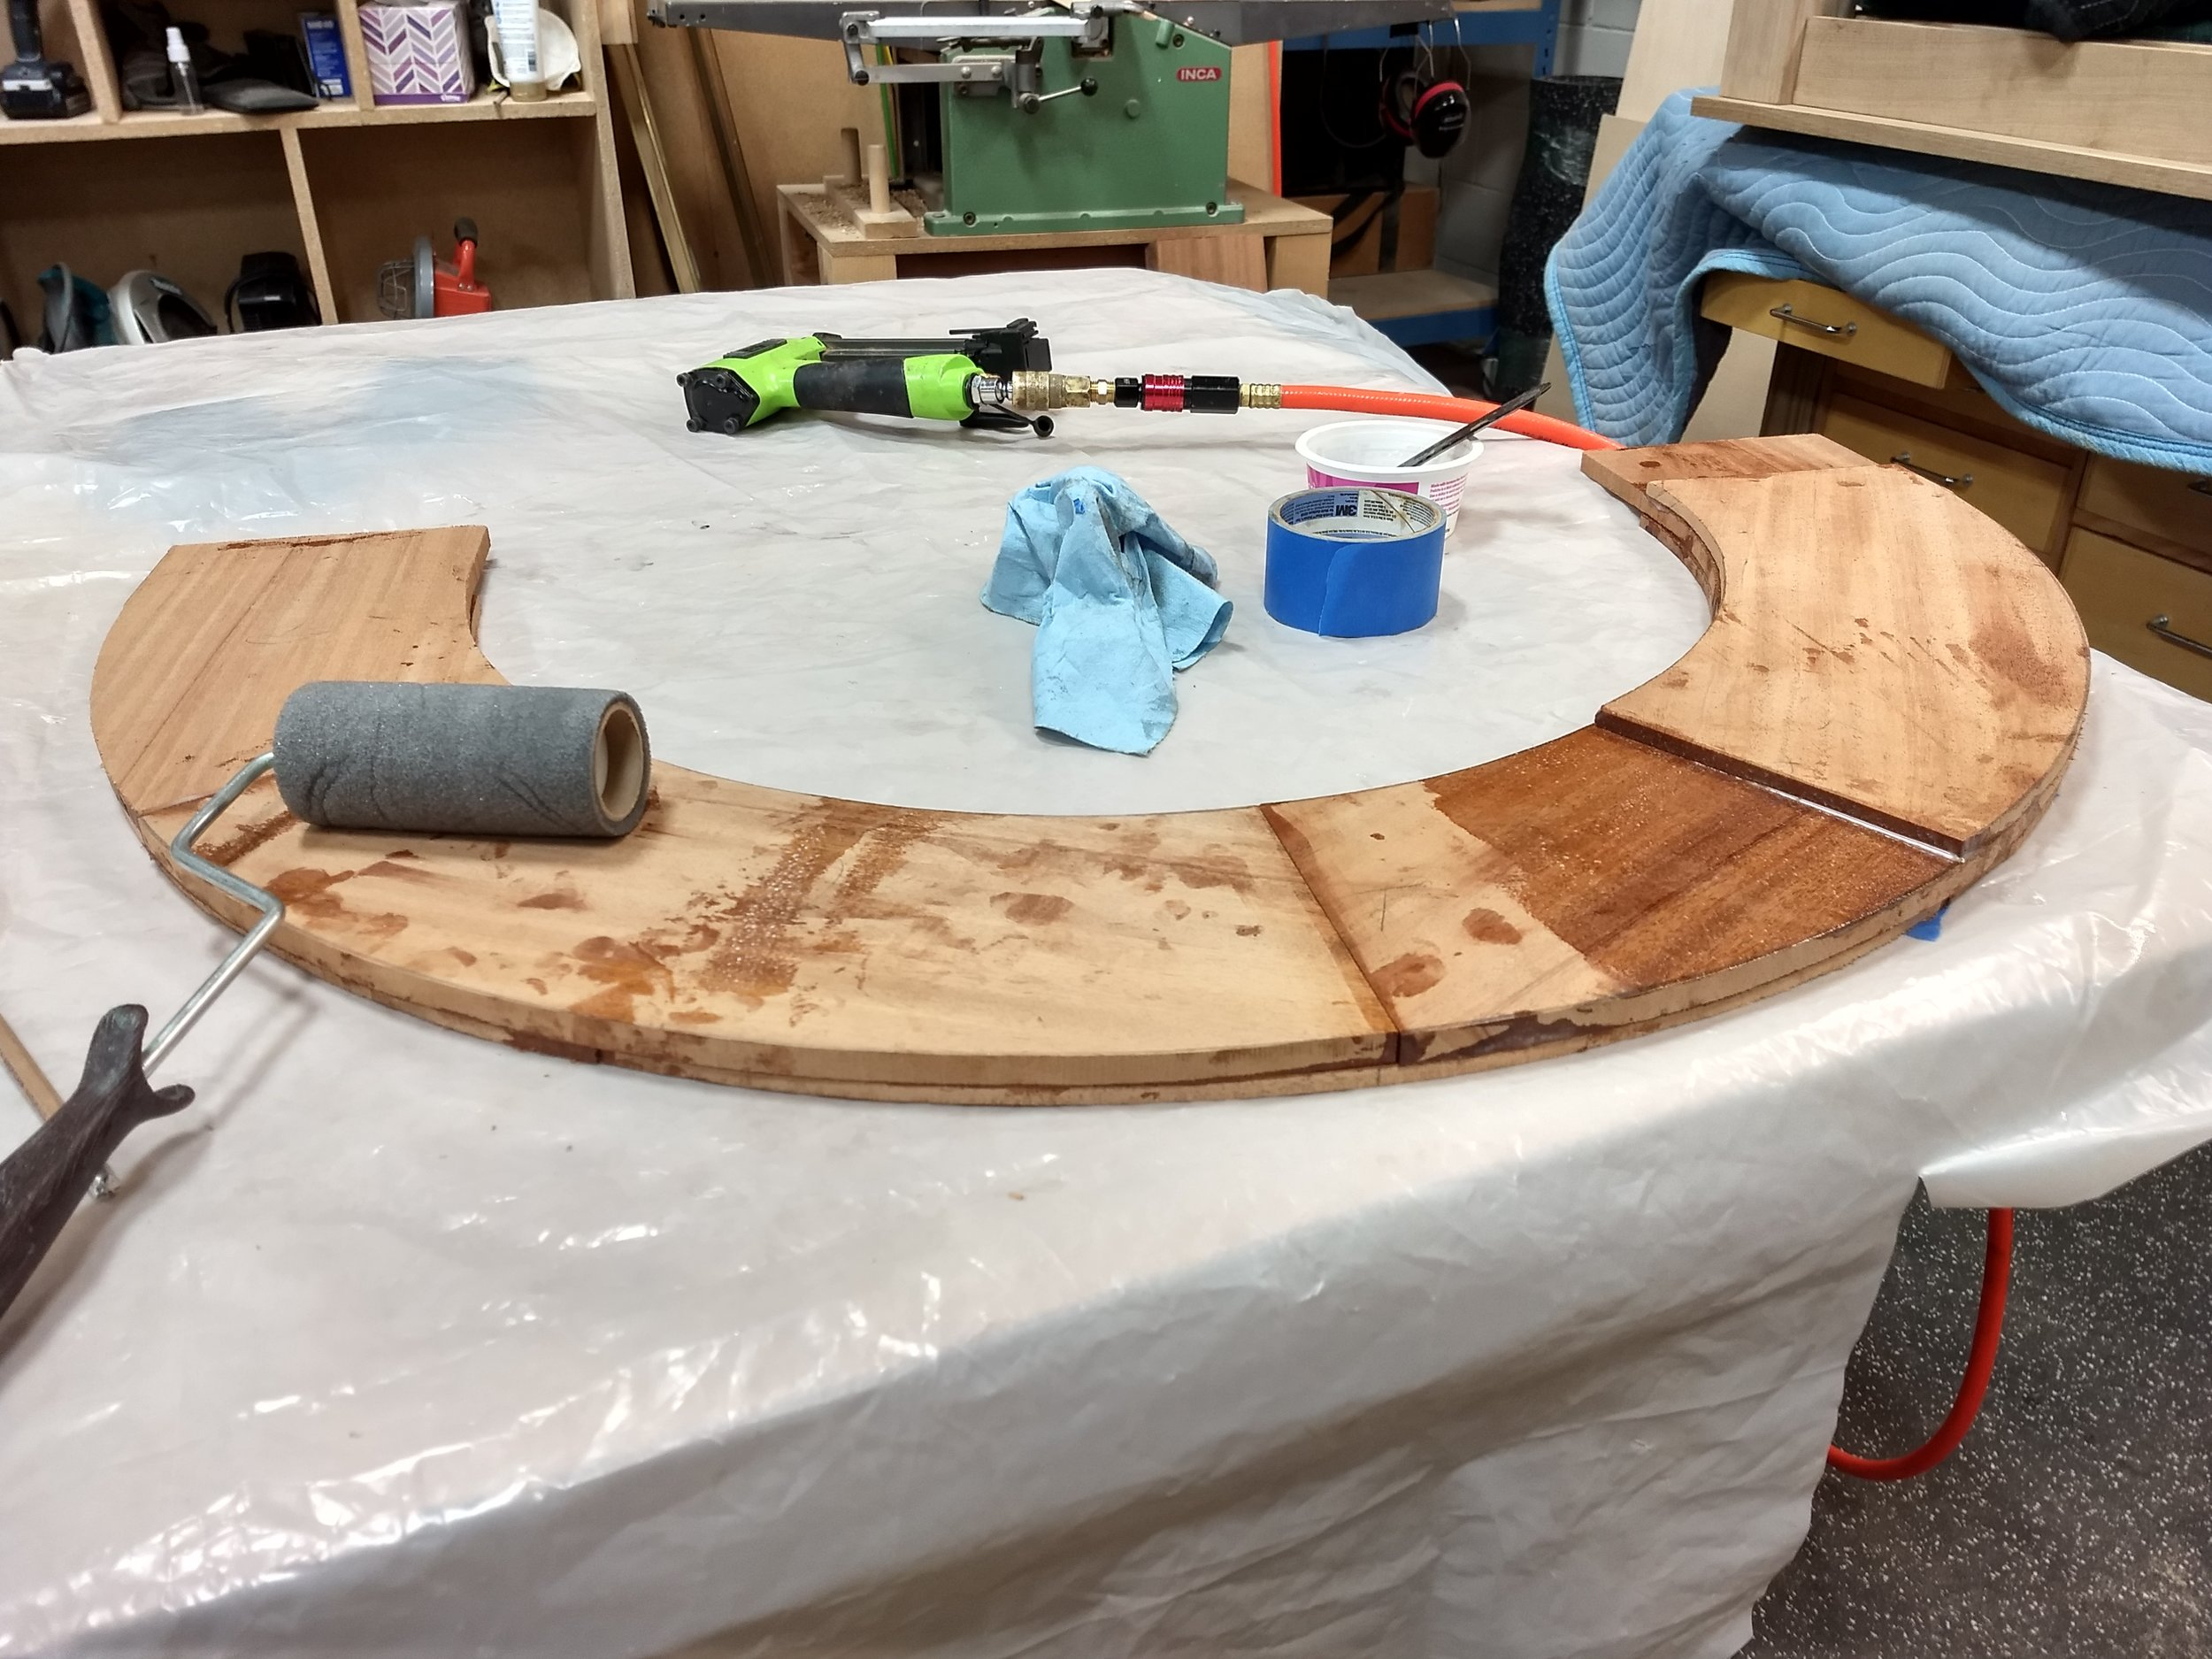 Gluing and assembling the arch plies